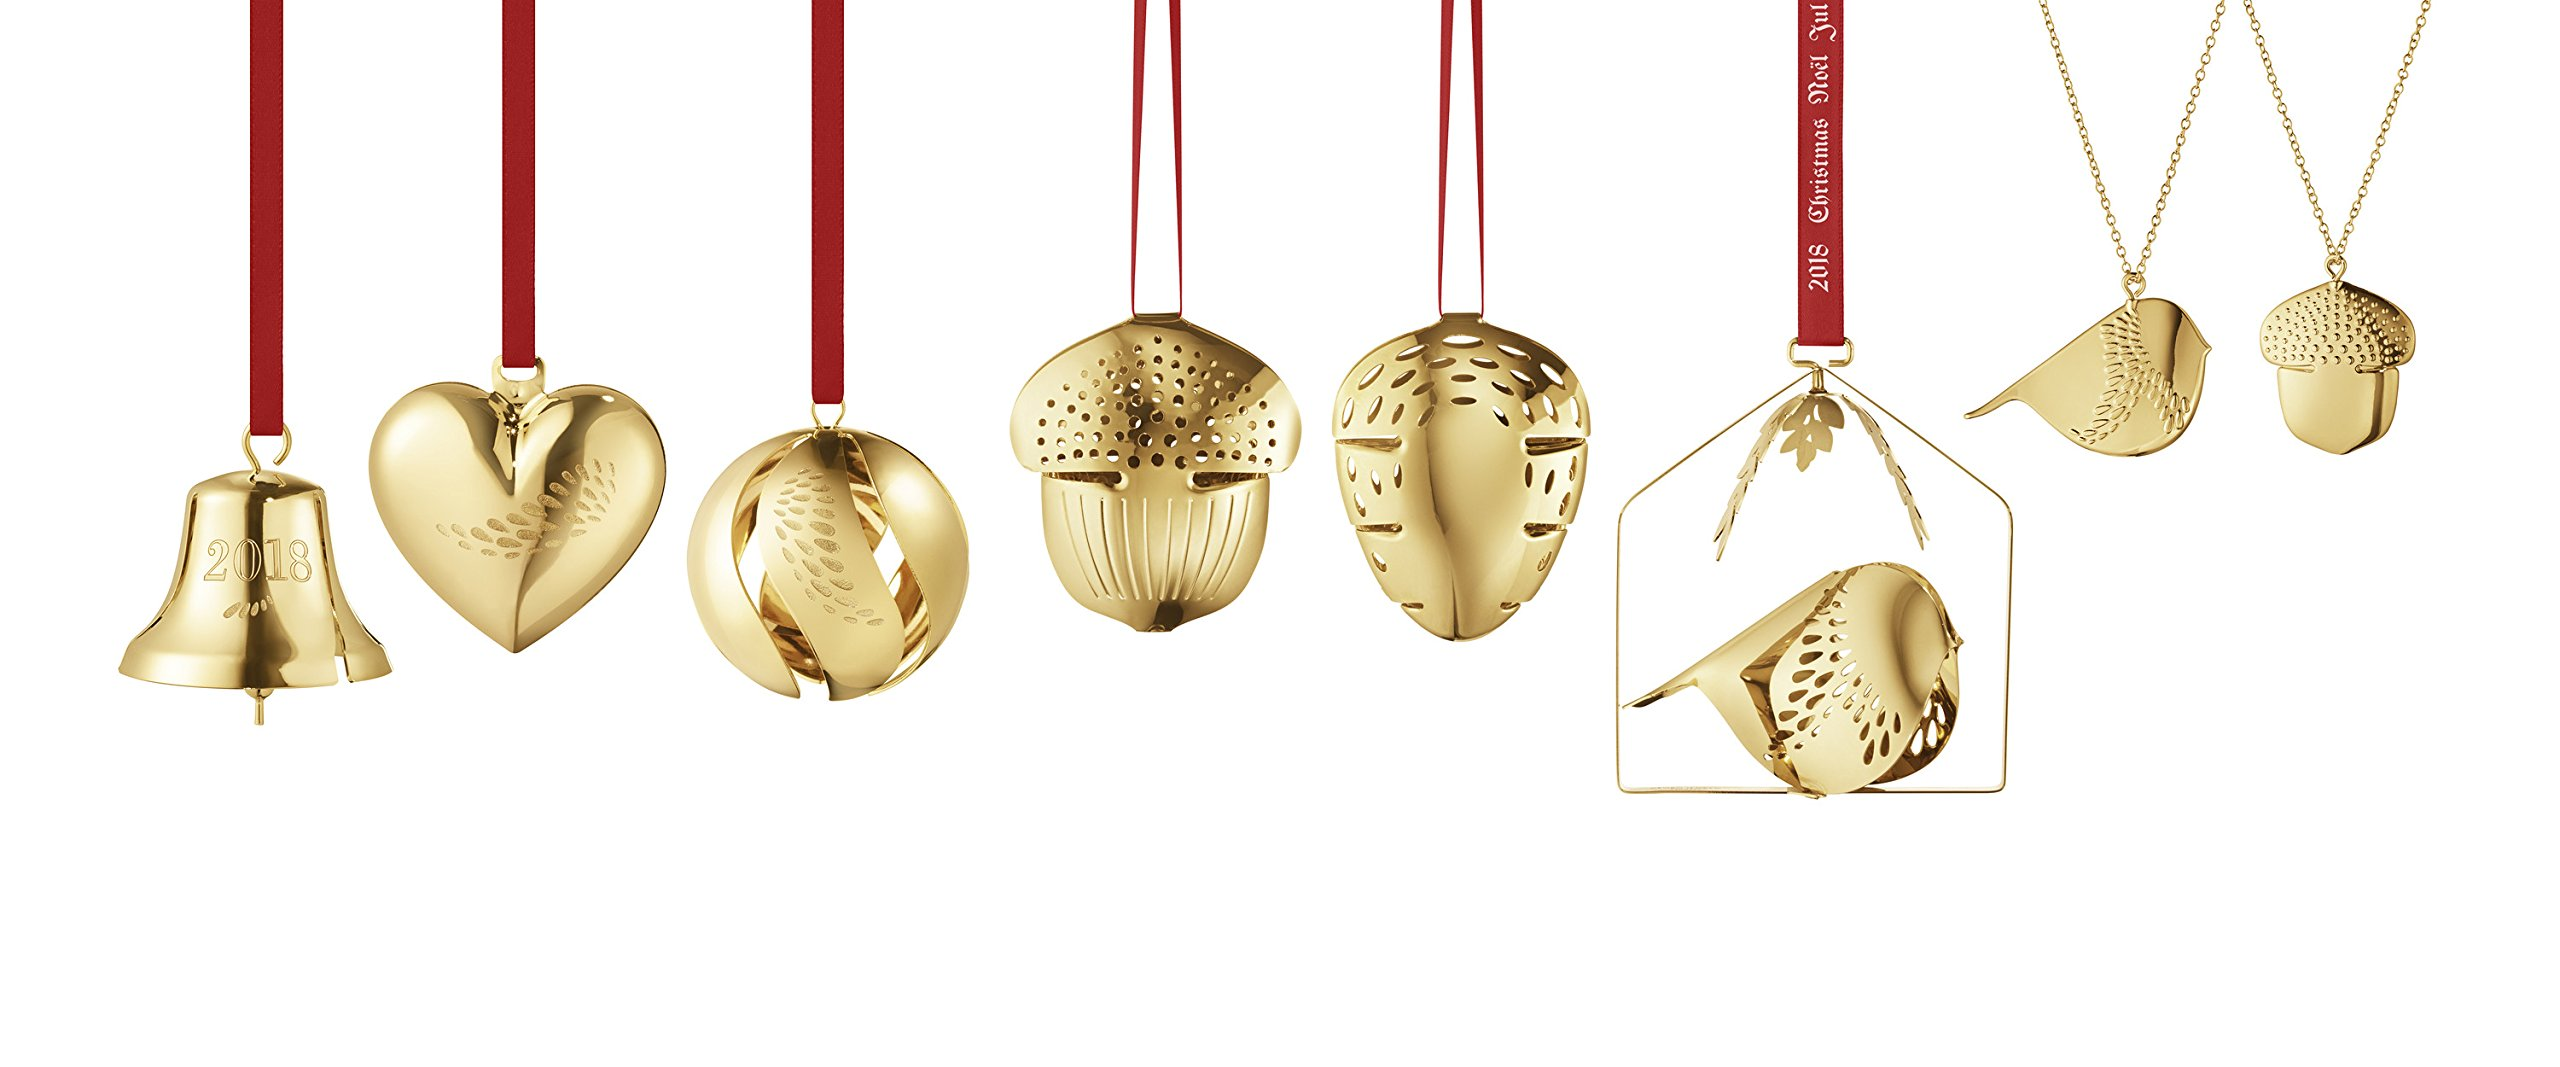 Georg Jensen 1 x Christmas Decoration, Plated Brass, Gold, One Size